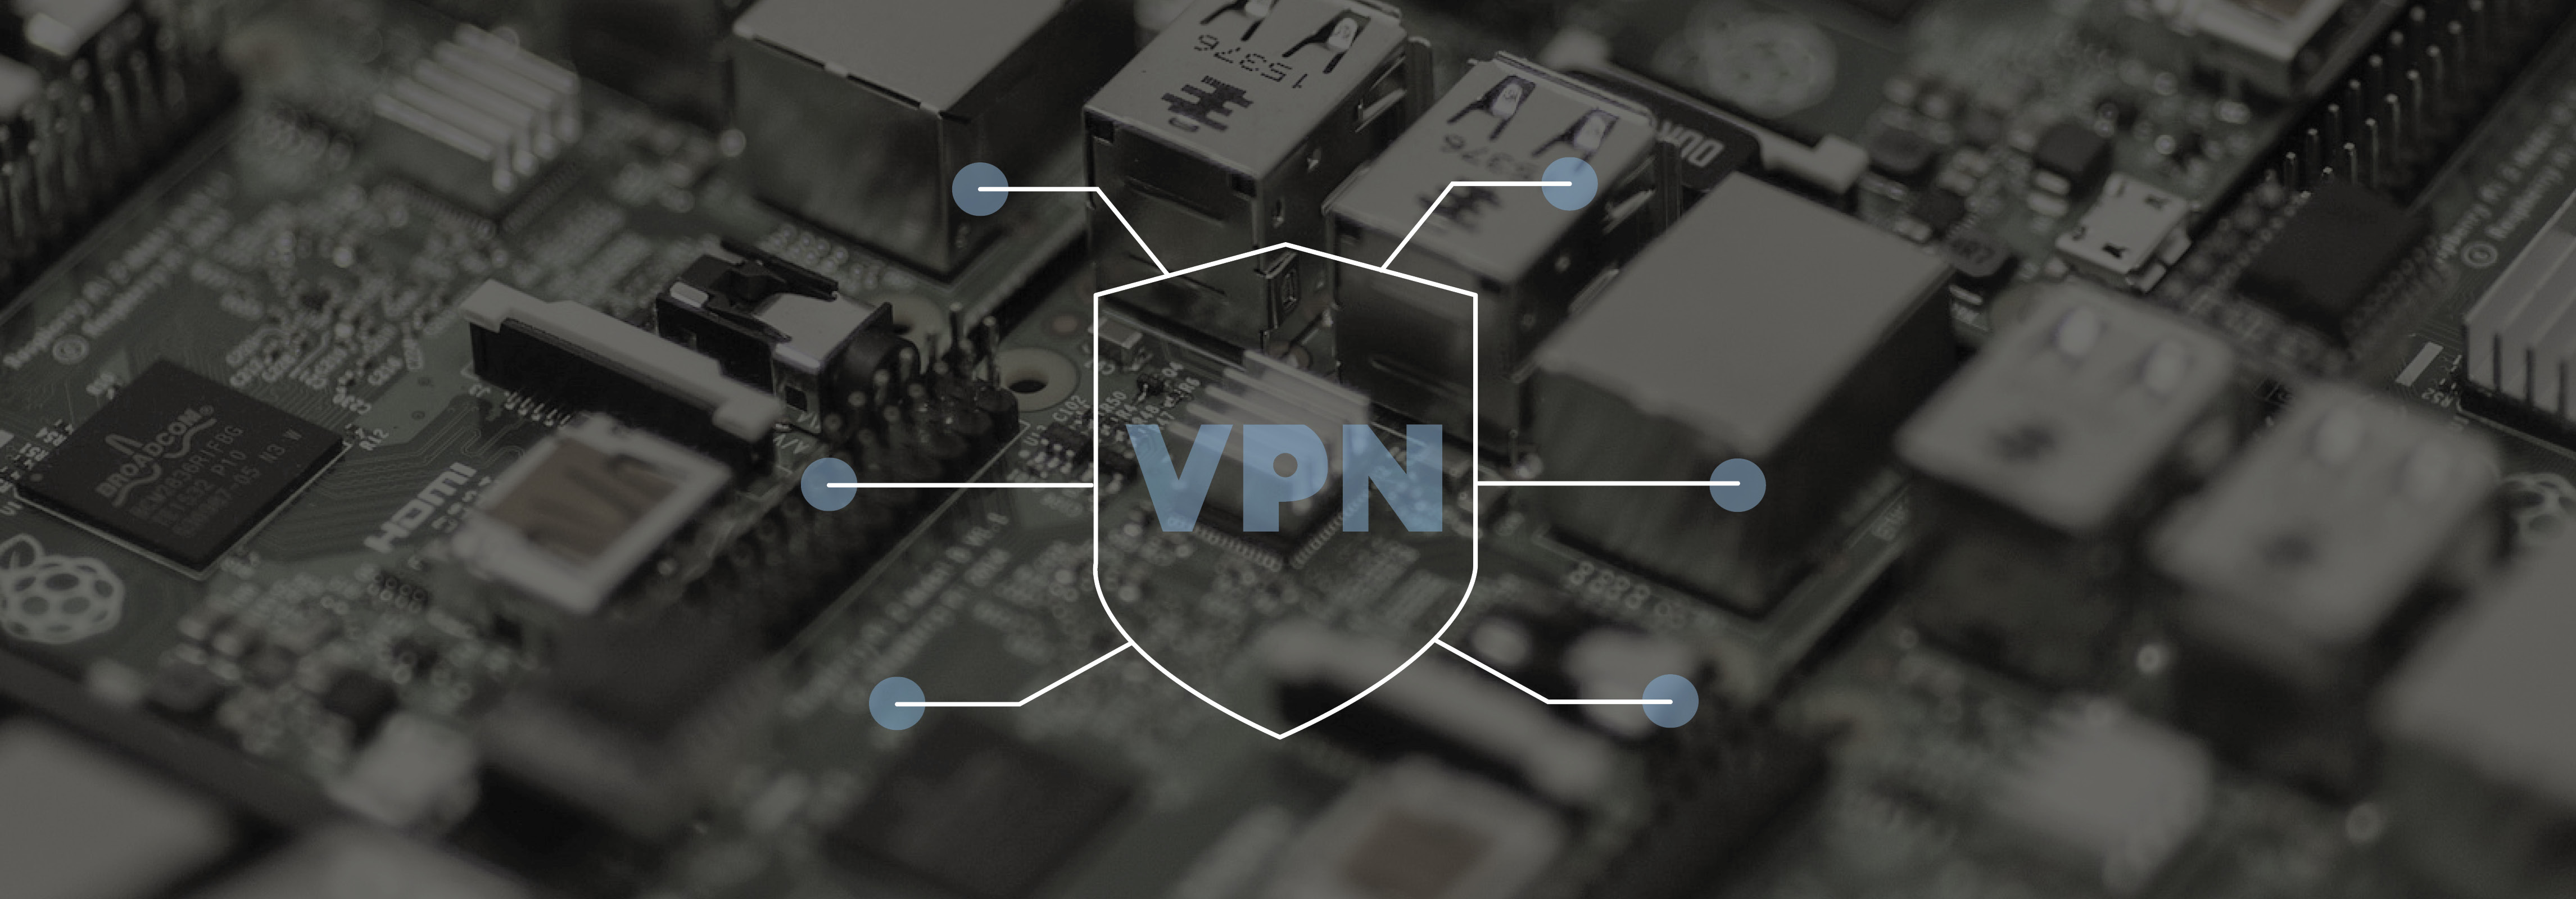 Circuit board with VPN icon